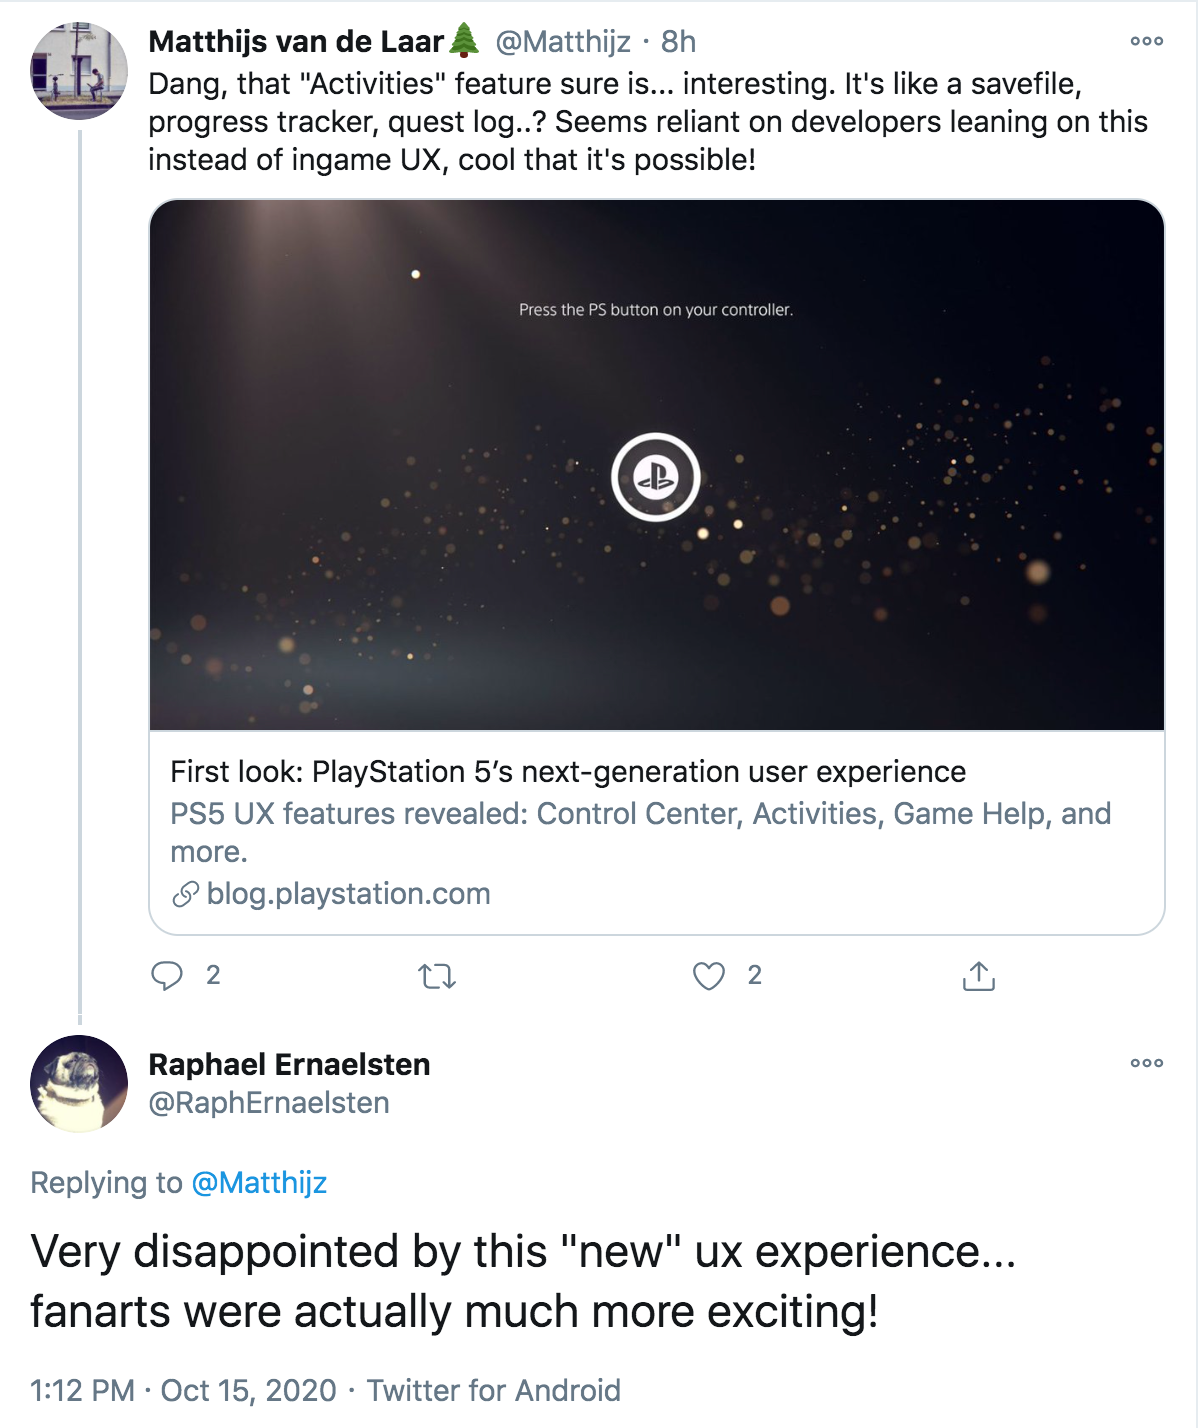 Tweets mentioning PlayStation 5's UX.